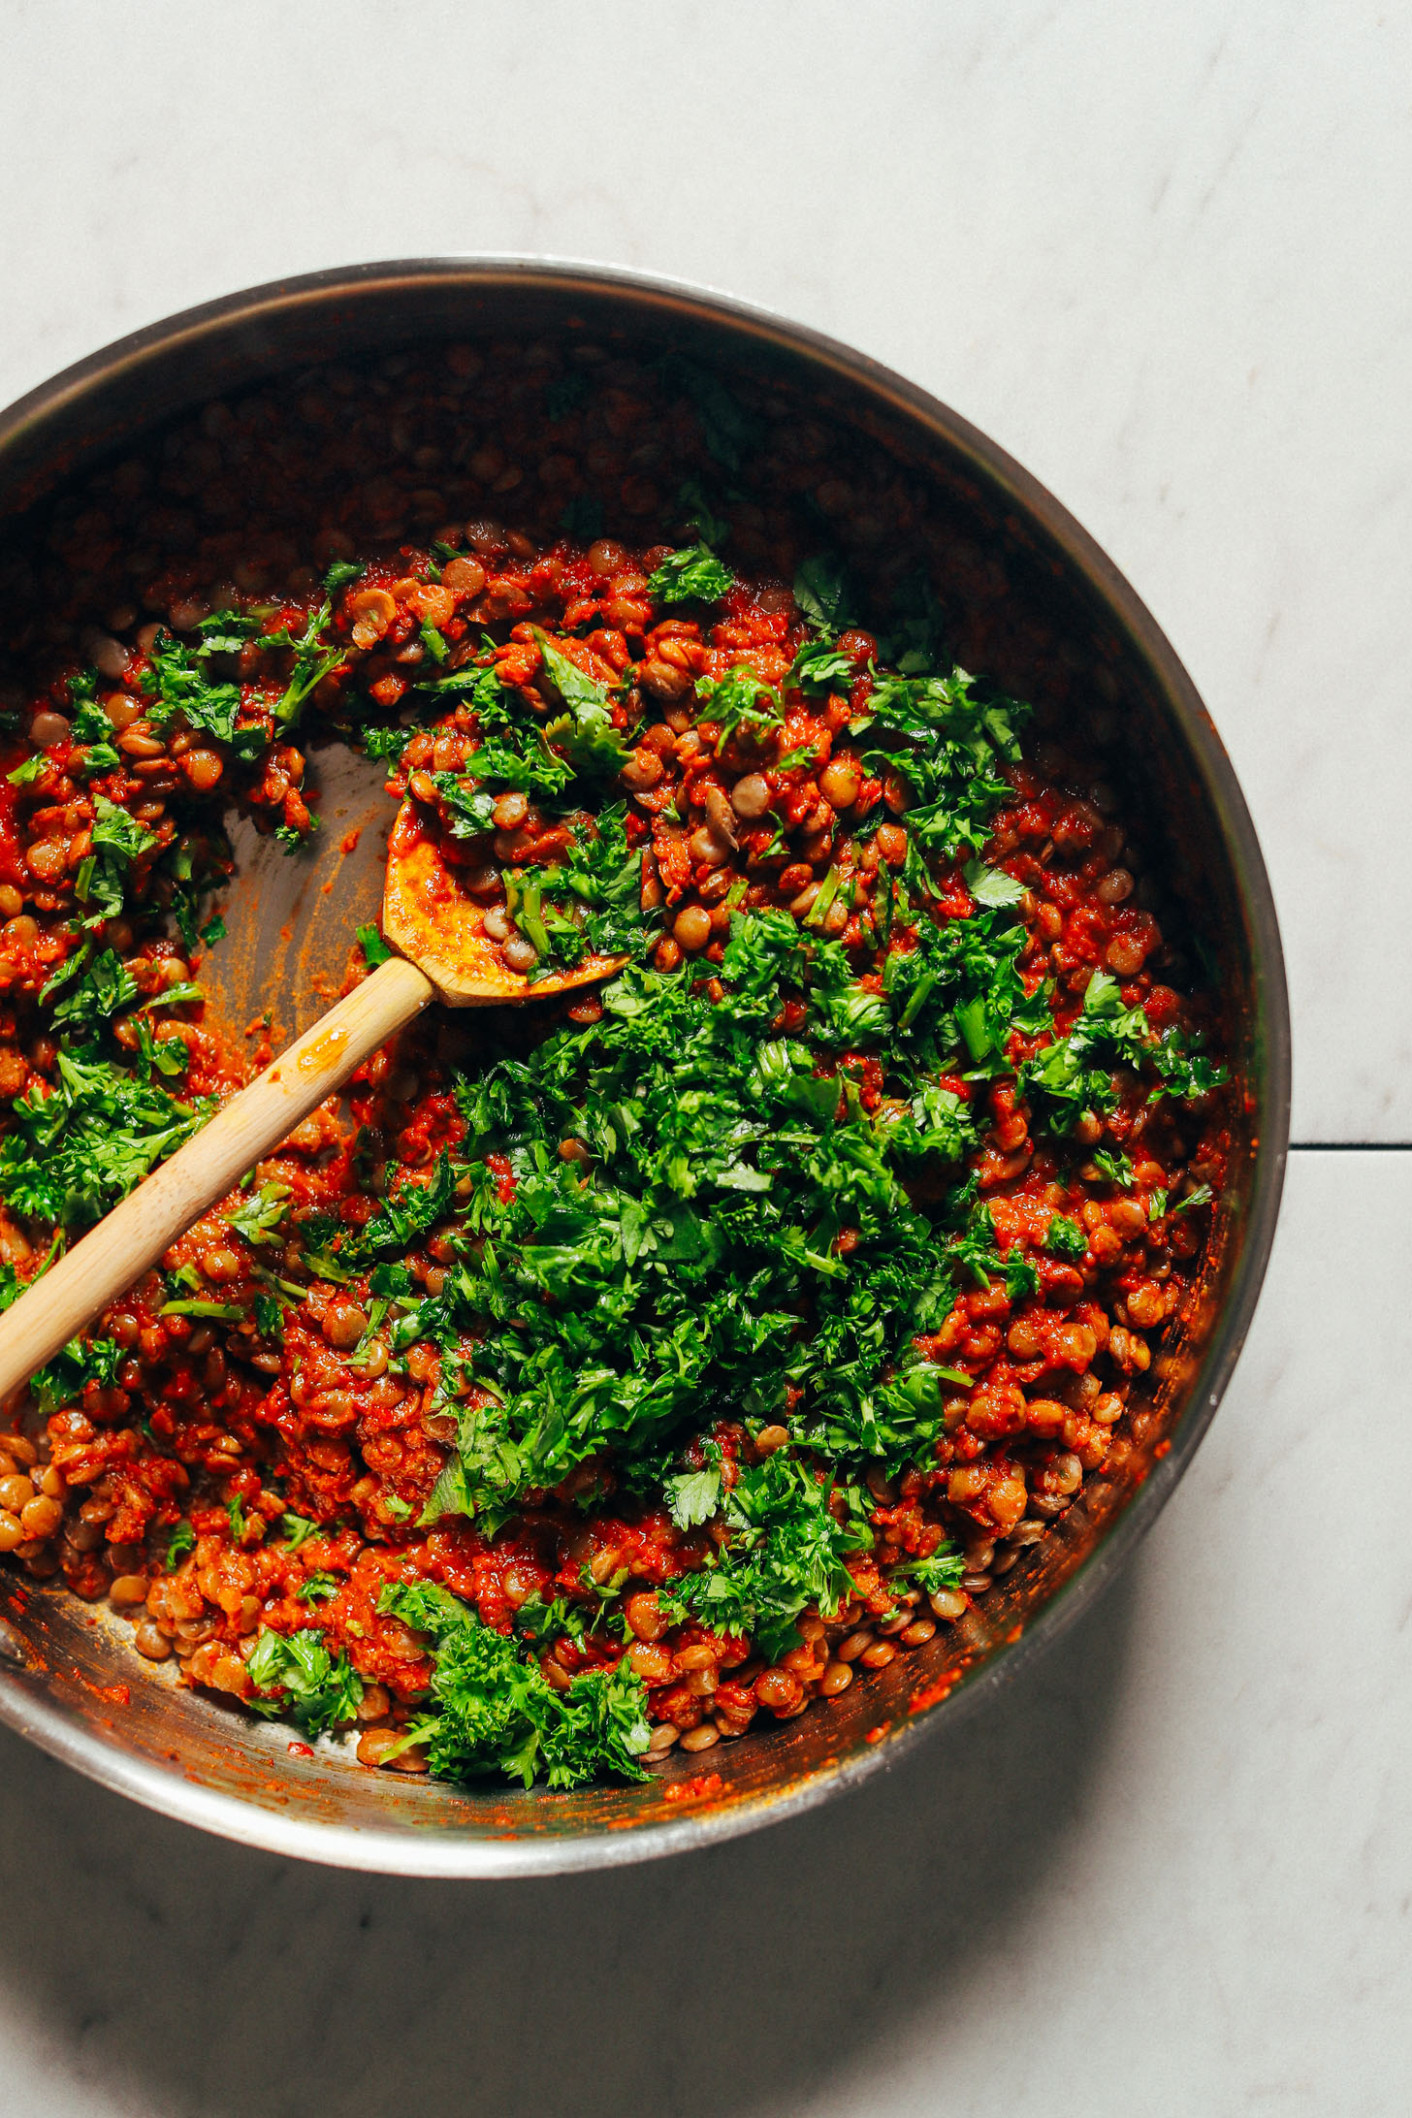 Saucy Moroccan-Spiced Lentils